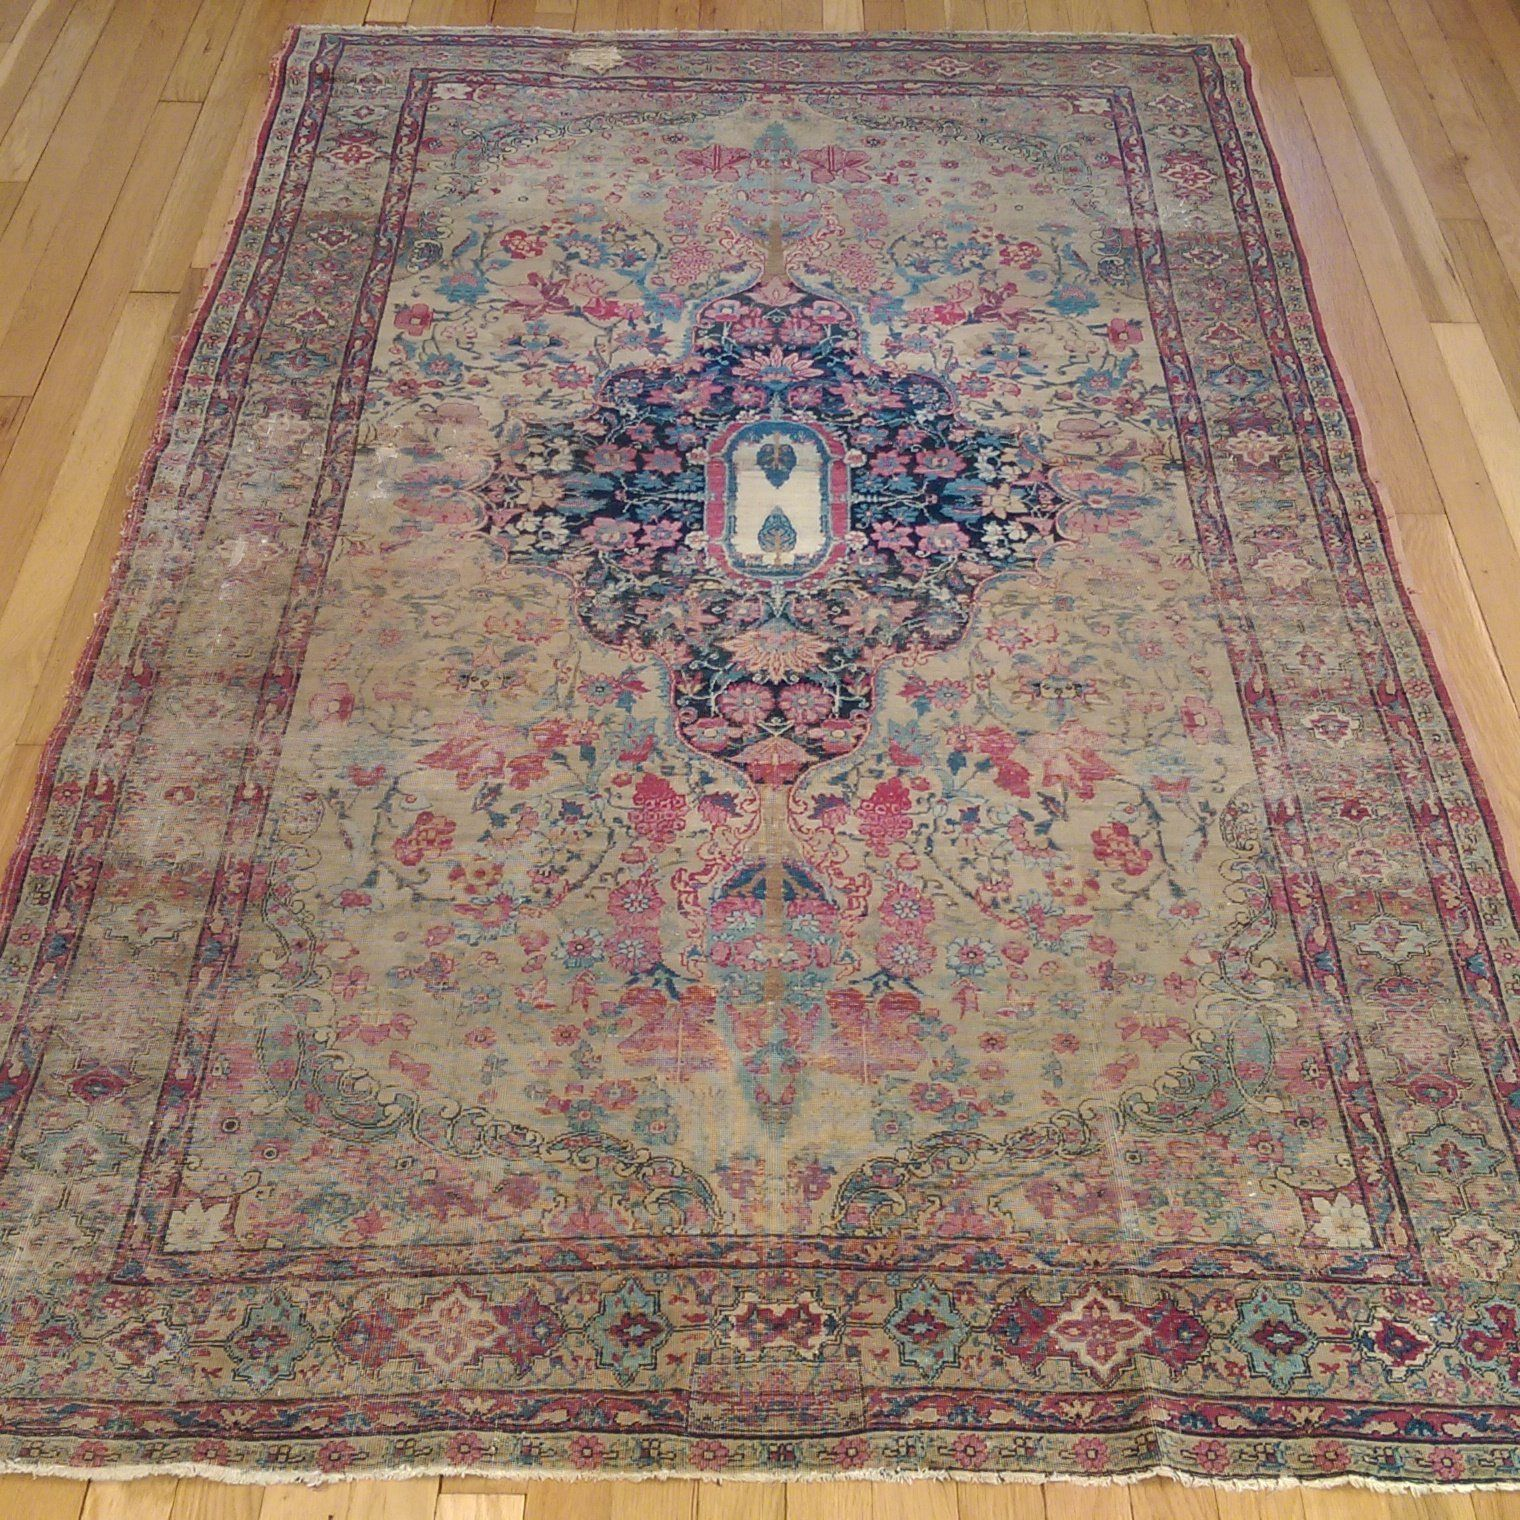 Worn To Perfection With A Soft Color Palette Antique Persian Rug 4 X 6 9 Cream Kirman Jessie S Oriental Rugs